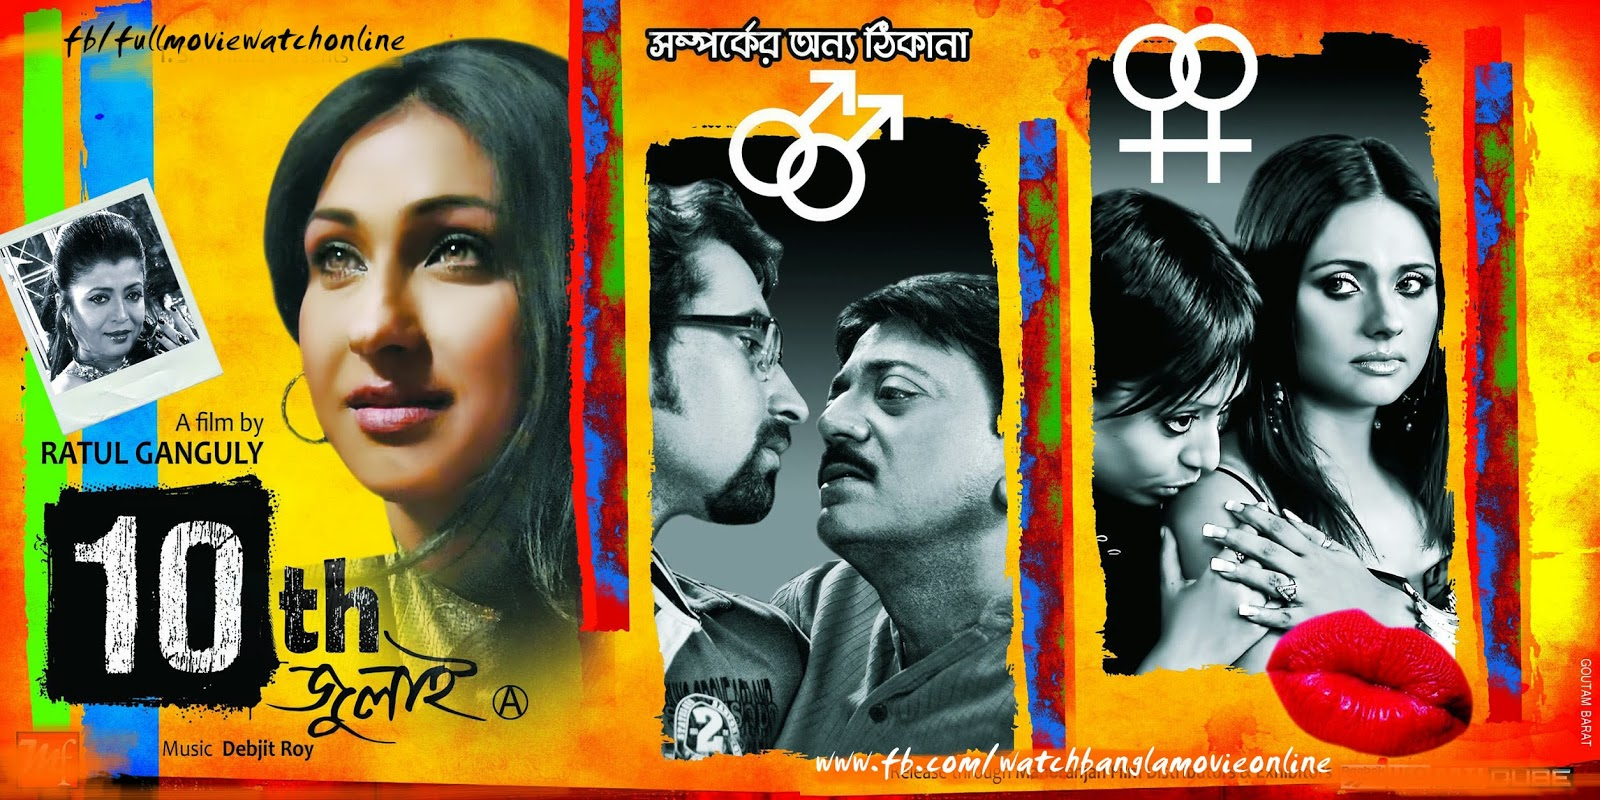 Topor mathae-aashiqui (2015) kolkata bangla movie video song.